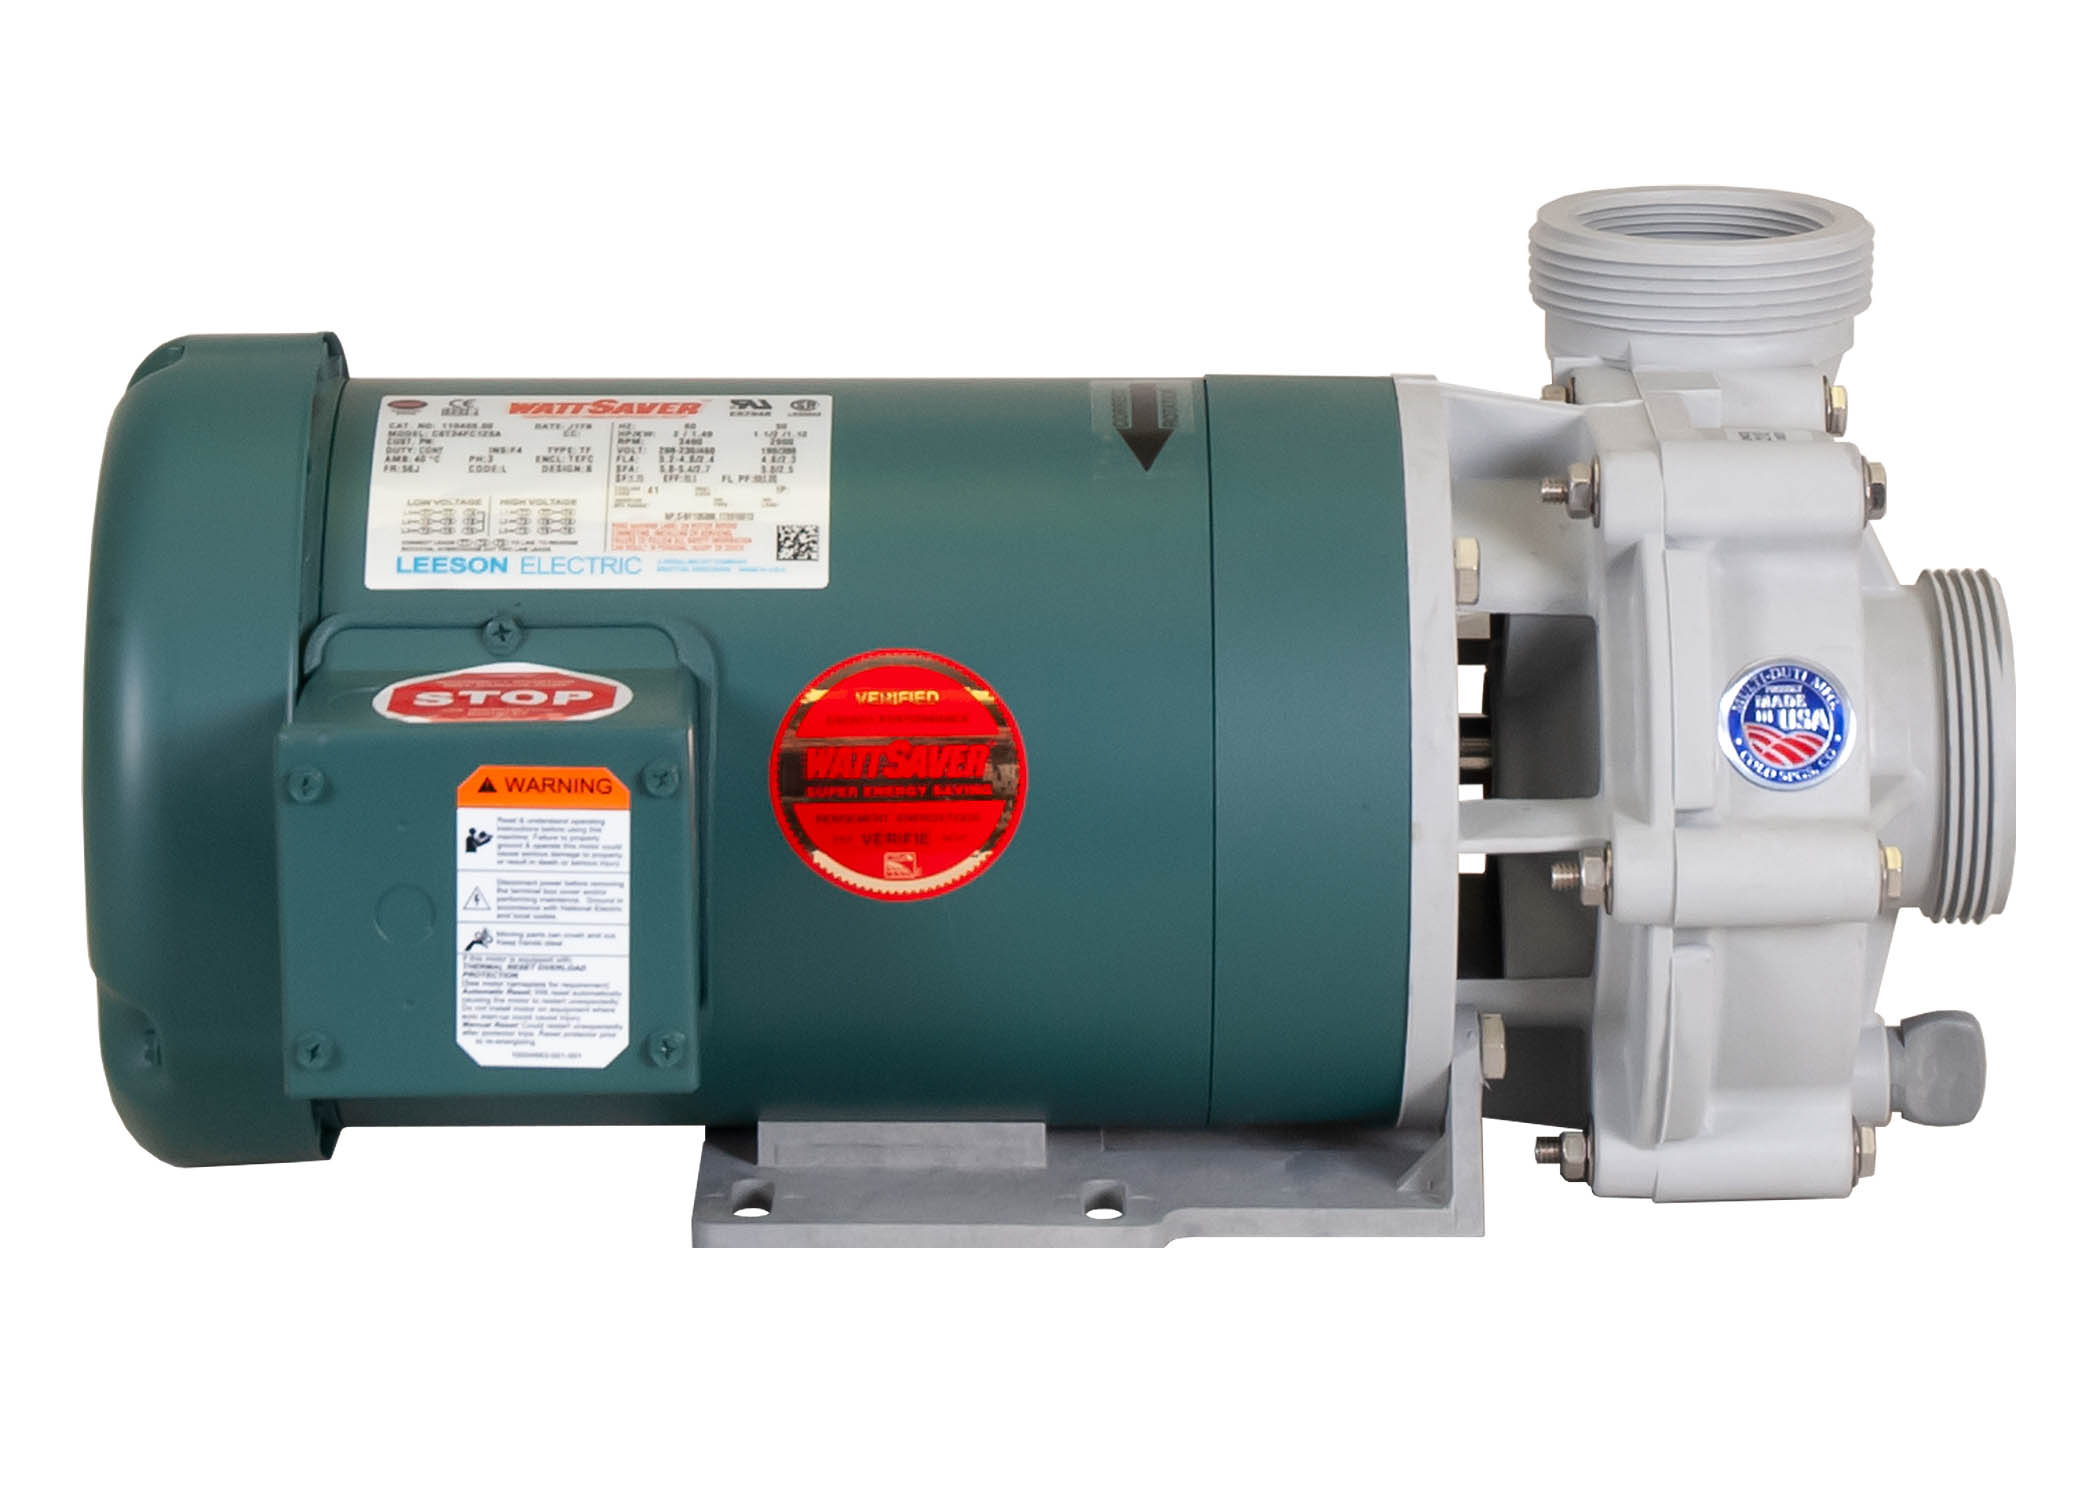 Advance 4000 Pump with green Leeson Motor left side view